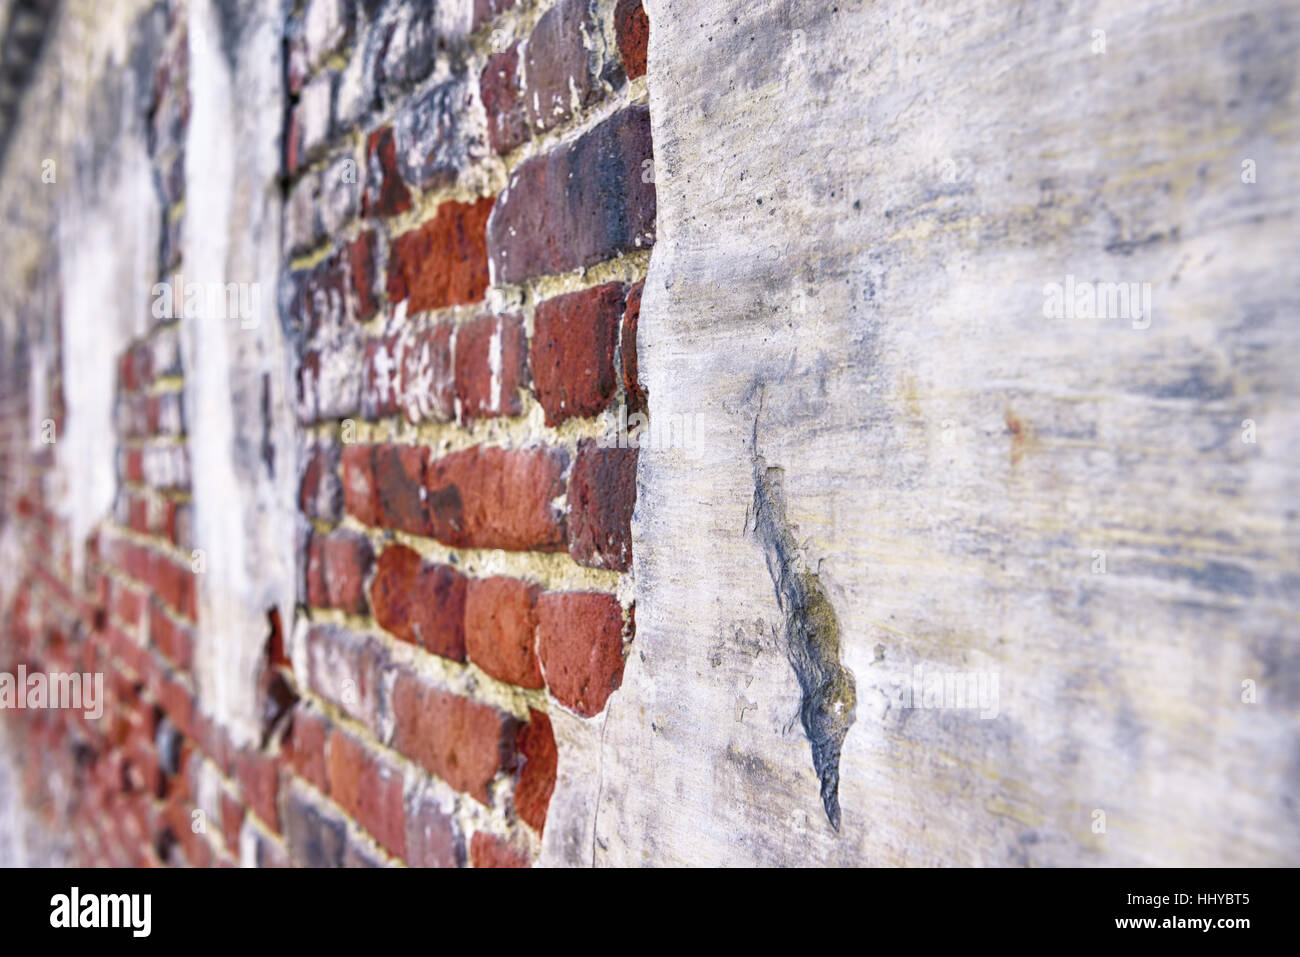 Very old street fence wall built from red bricks and painted - Stock Image